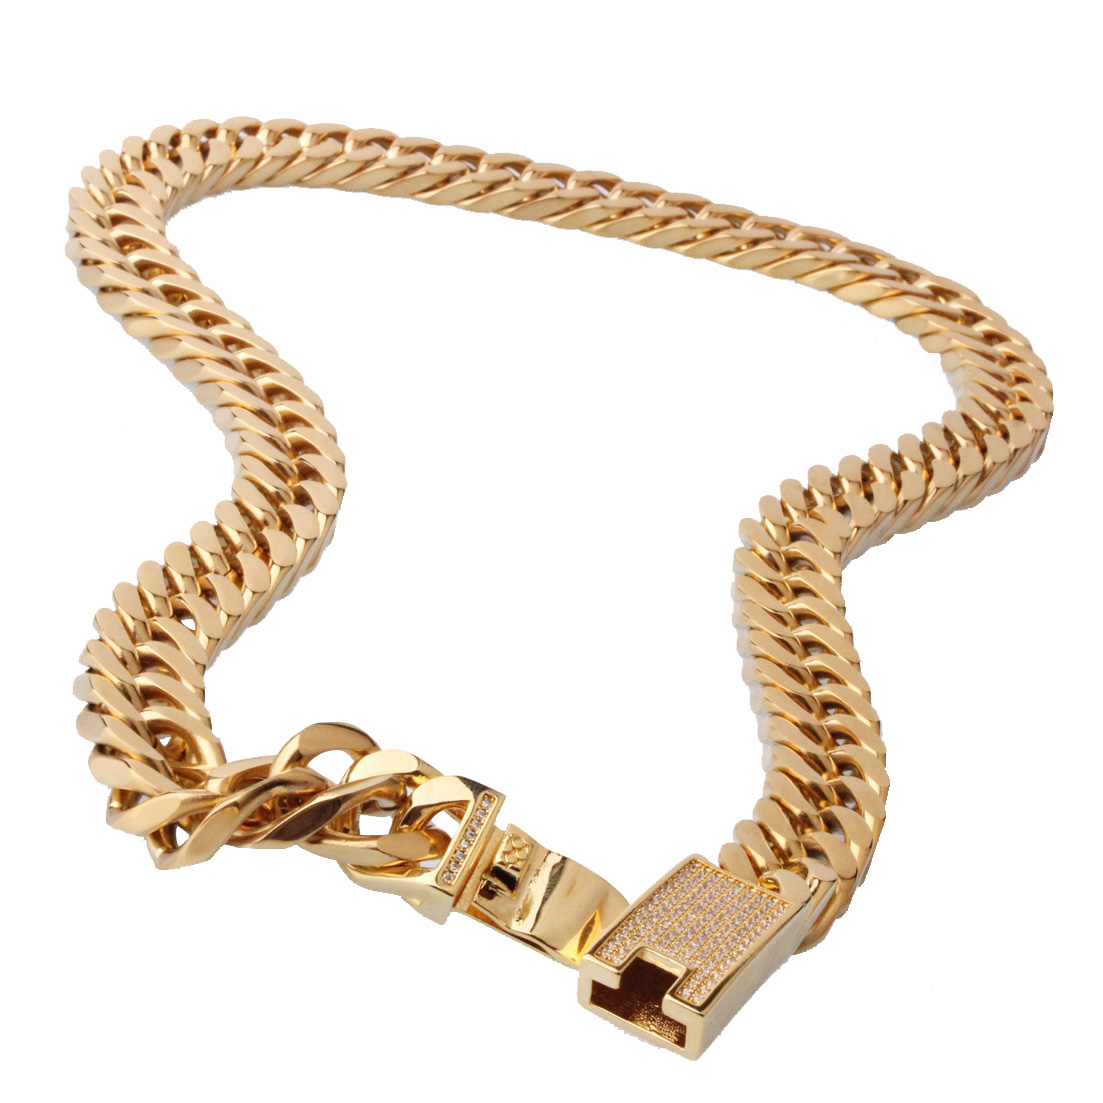 15MM New Charming 316L Stainless Steel Gold Jewelry Miami Cuban Chain Link Mens Boys Necklace Or Bracelet Bangle 7 32 inch in Chain Necklaces from Jewelry Accessories